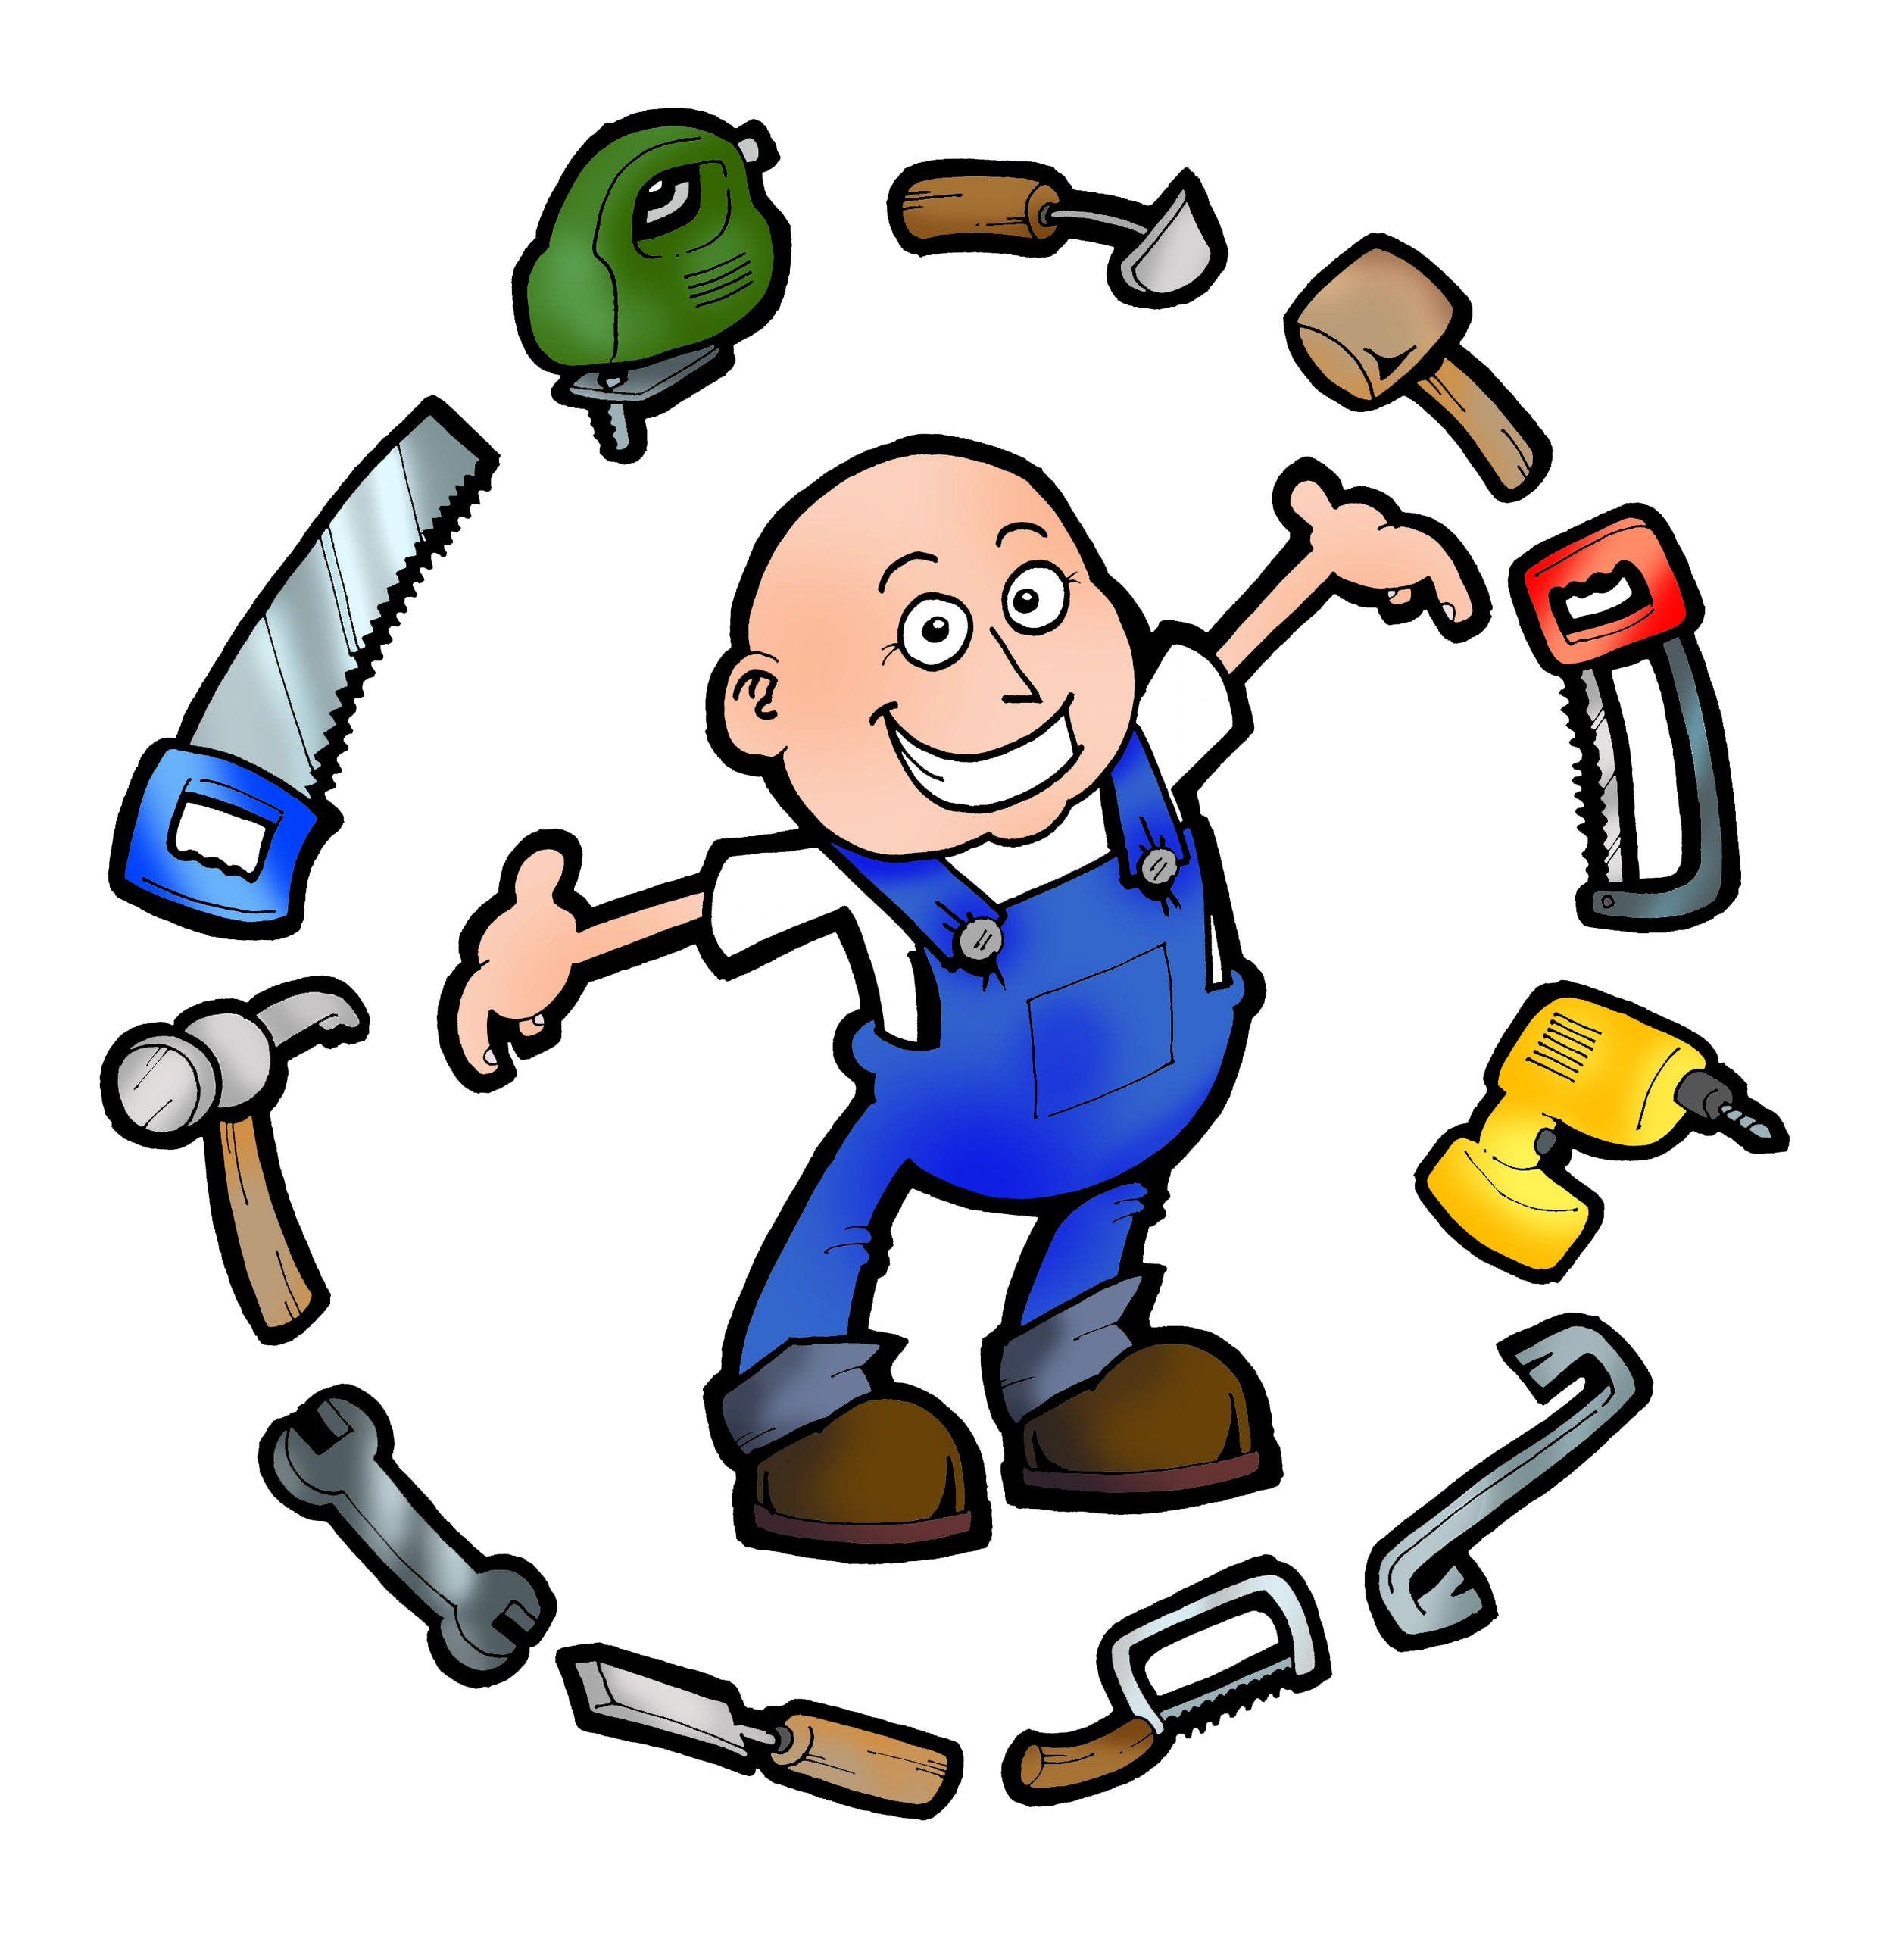 'Happy To Help' Handyman Services